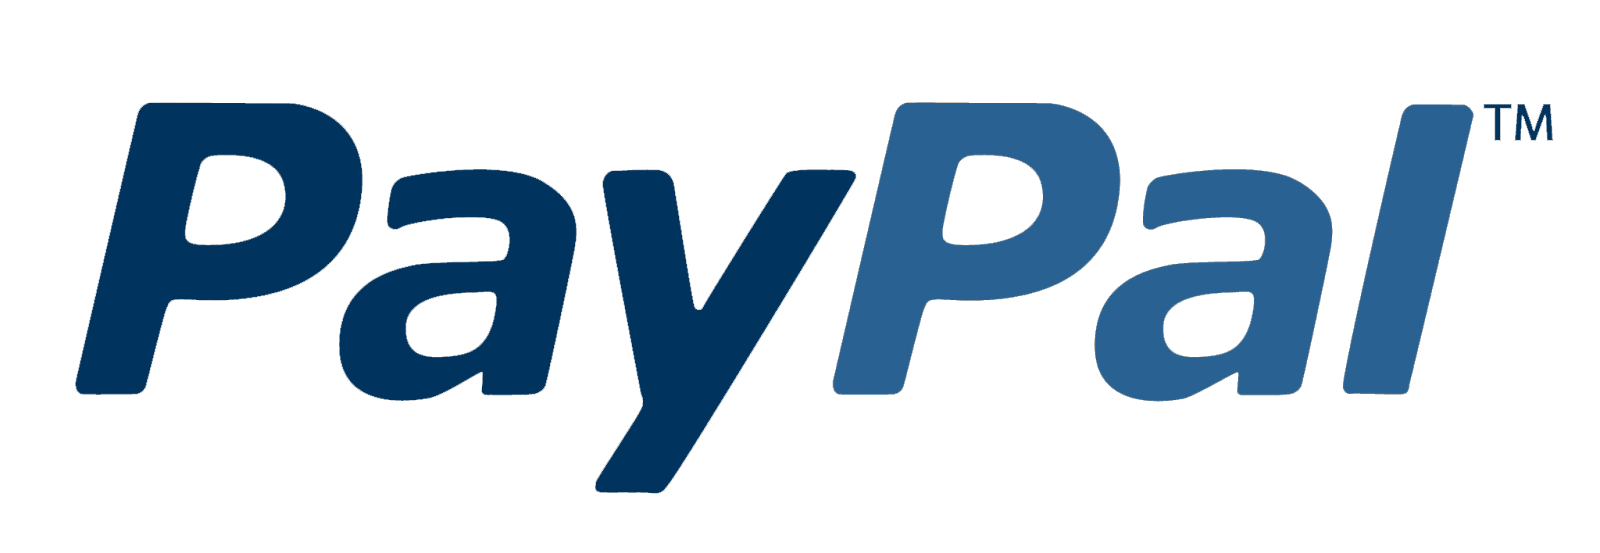 Paypal logo png transparent. Images free download